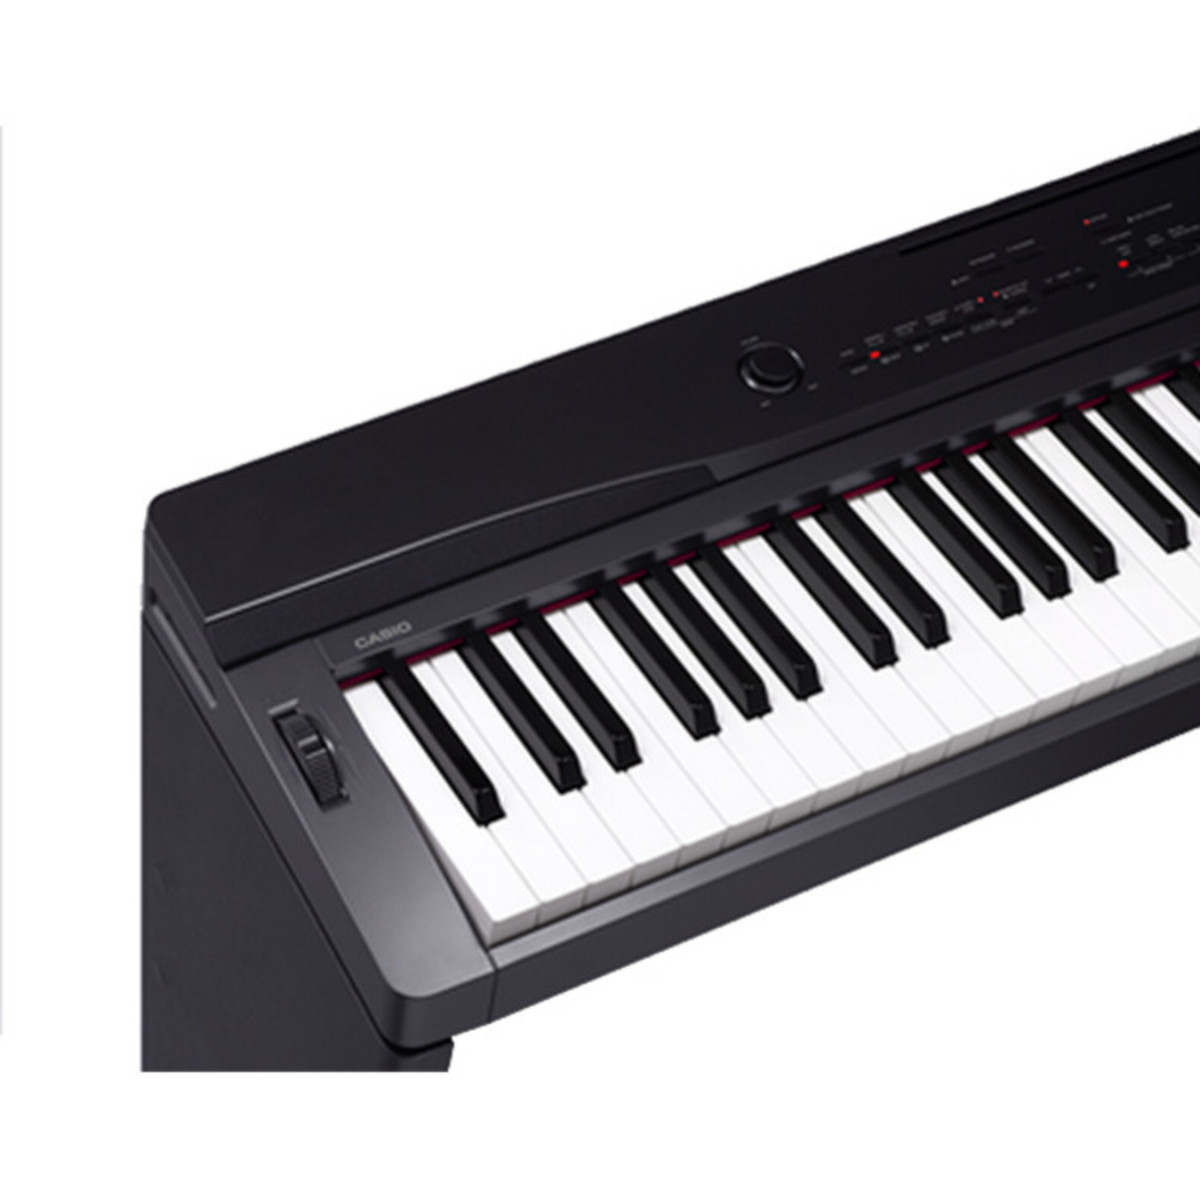 casio privia px 330 digital piano nearly new at. Black Bedroom Furniture Sets. Home Design Ideas